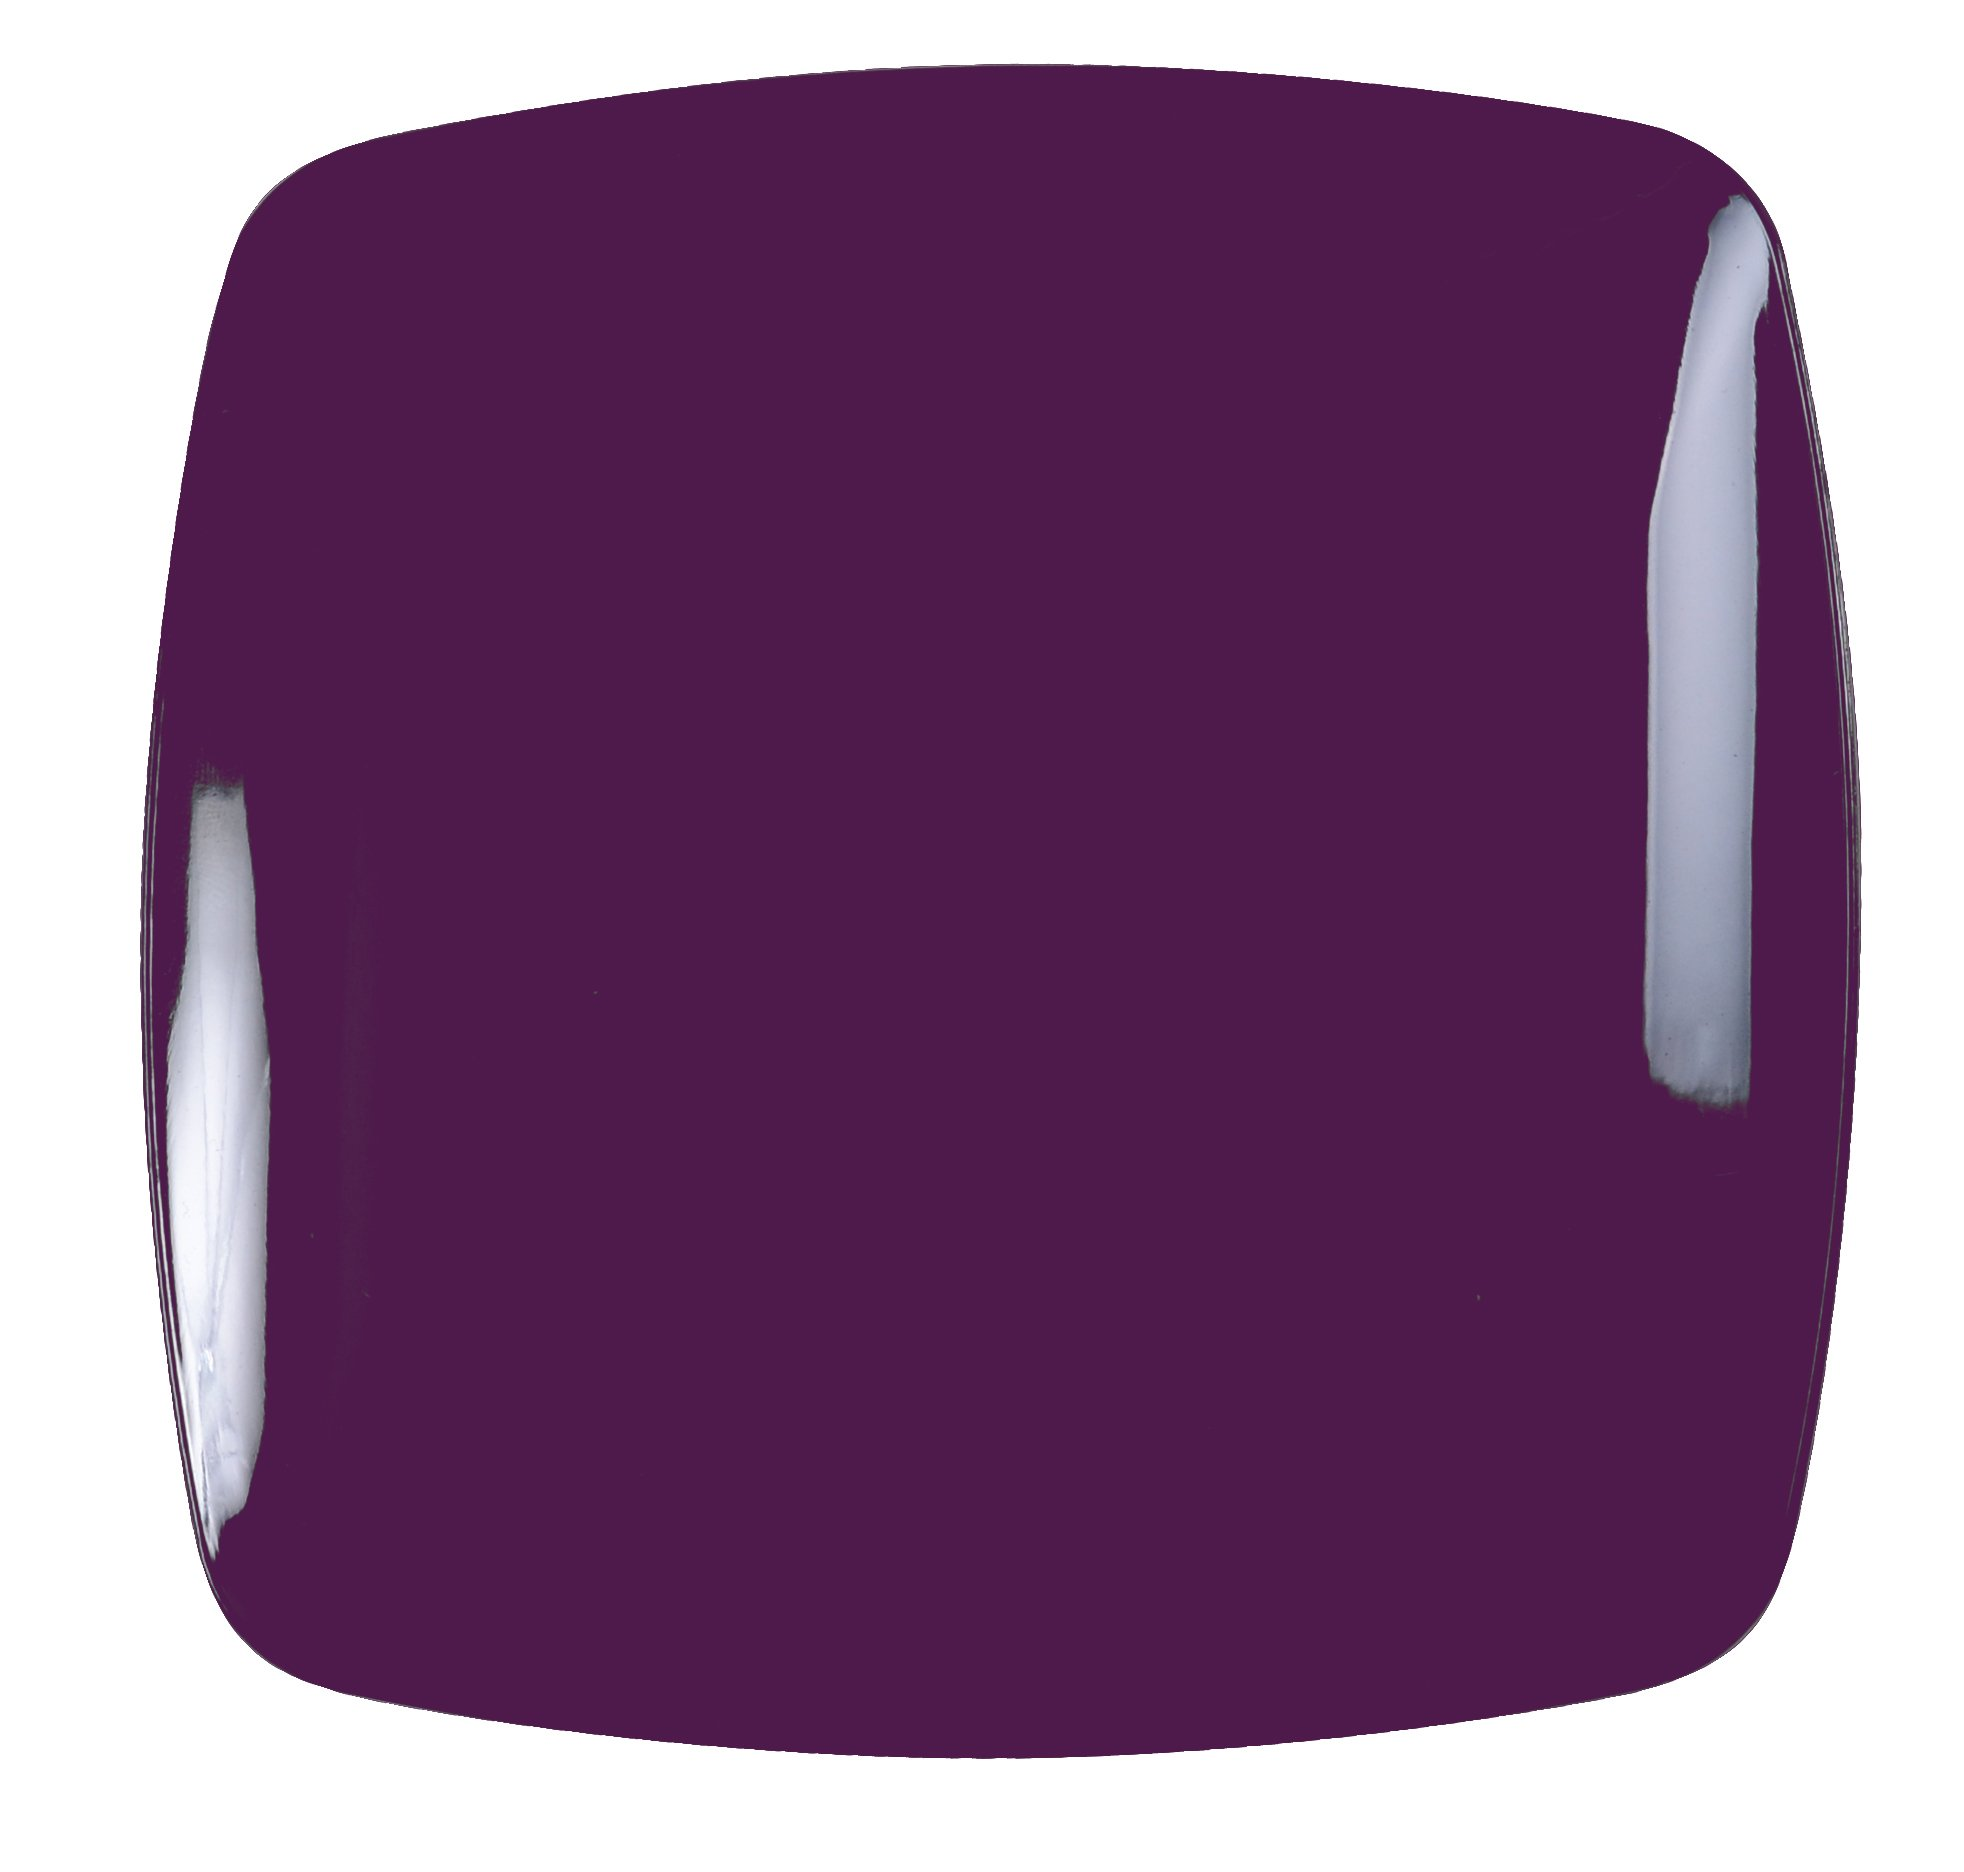 Renaissance 120-Piece Rounded Square China-Like Plate, 10-Inch, Purple, Case of 12 by Renaissance